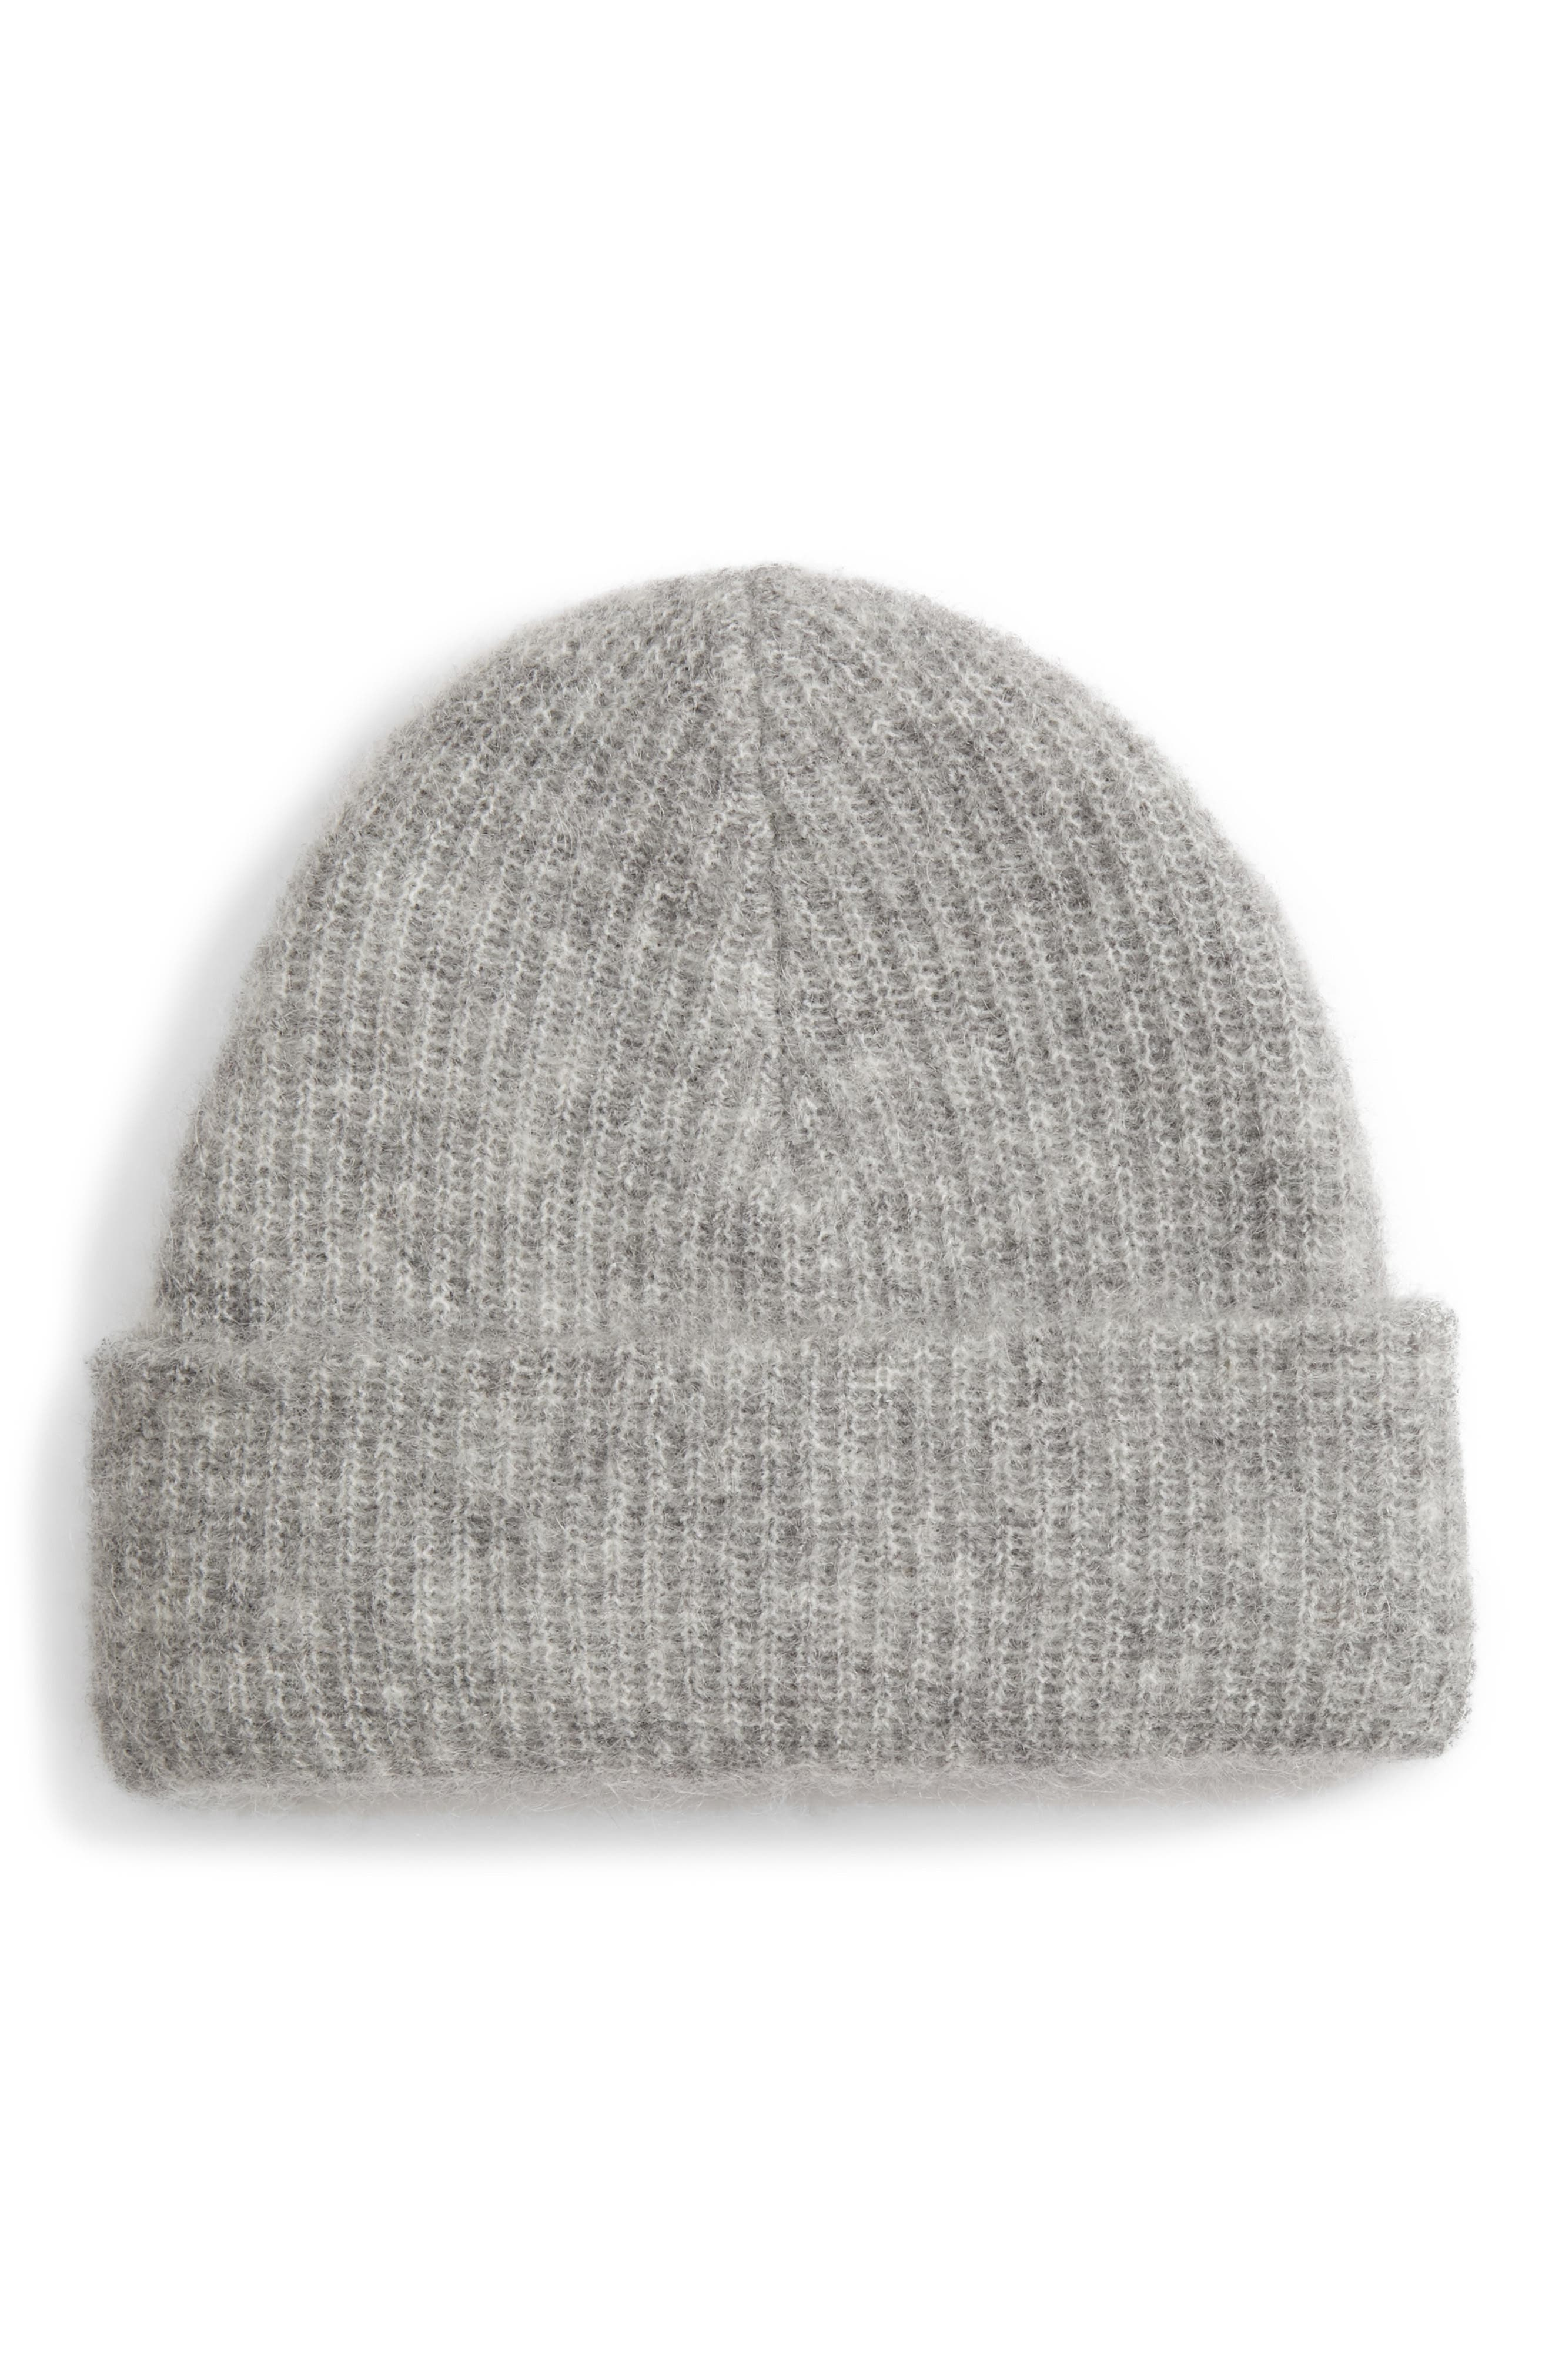 Soft Wool Blend Knit Beanie,                         Main,                         color, PALOMA MELANGE 921